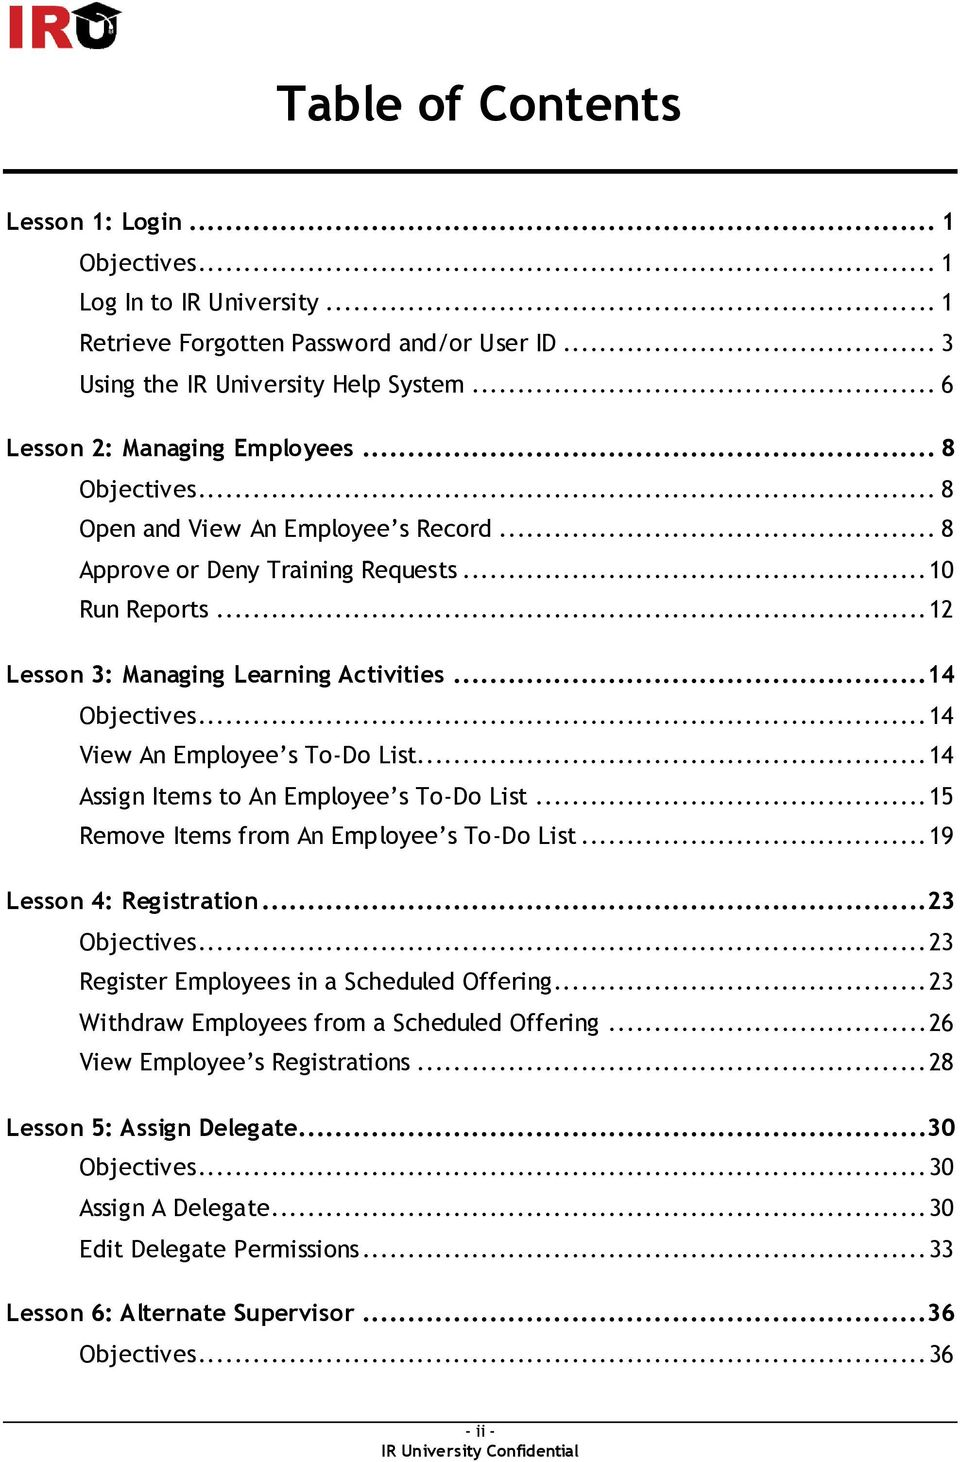 .. 14 View An Employee s To-Do List... 14 Assign Items to An Employee s To-Do List... 15 Remove Items from An Employee s To-Do List... 19 Lesson 4: Registration...23 Objectives.